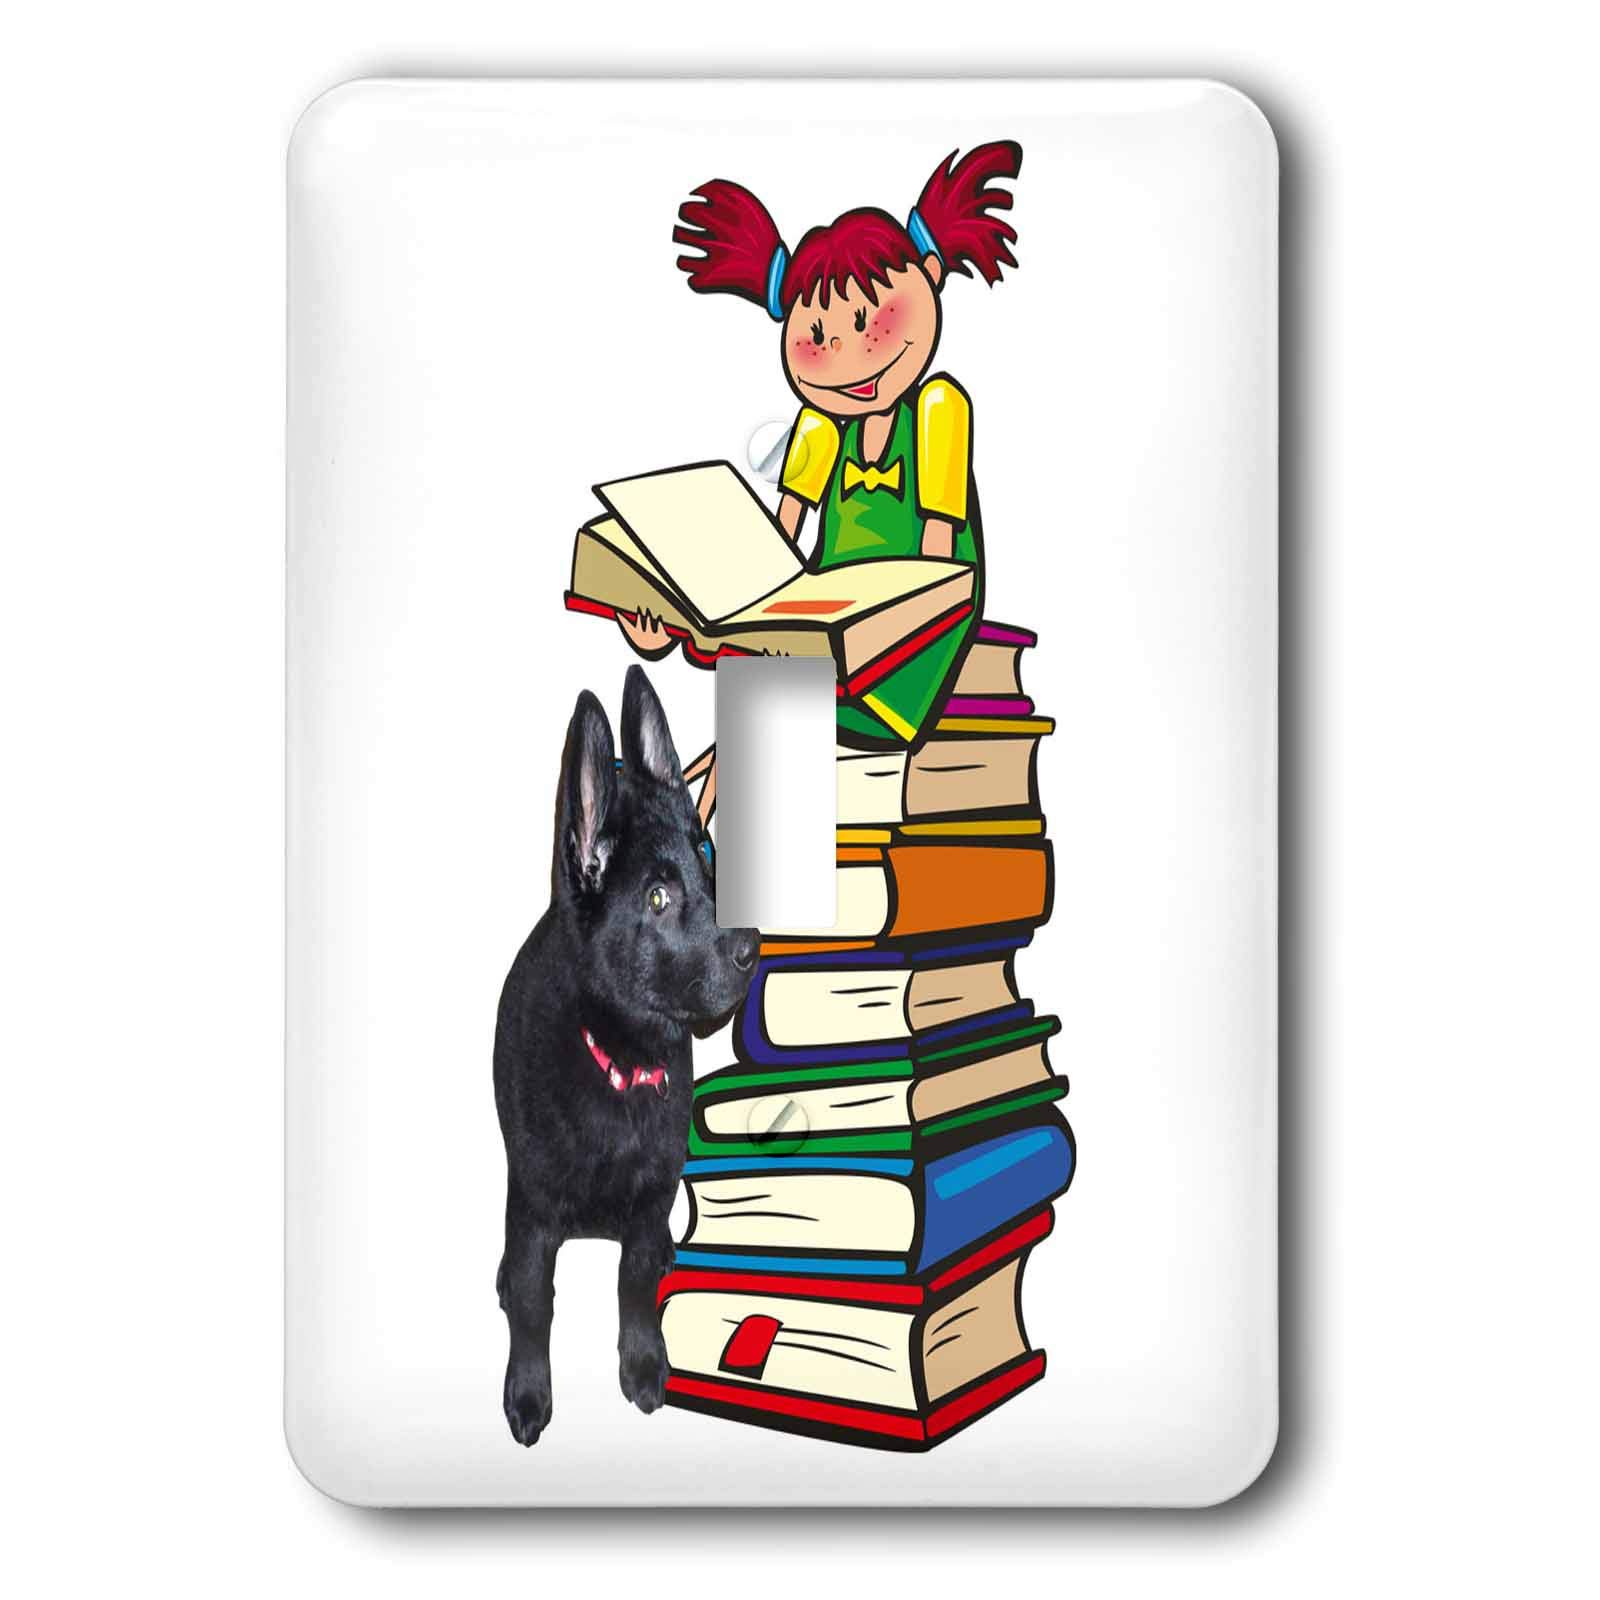 3dRose Sandy Mertens Dog Designs - Study Buddy GSD Puppy with School Girl on Books, 3drsmm - Light Switch Covers - single toggle switch (lsp_295174_1)